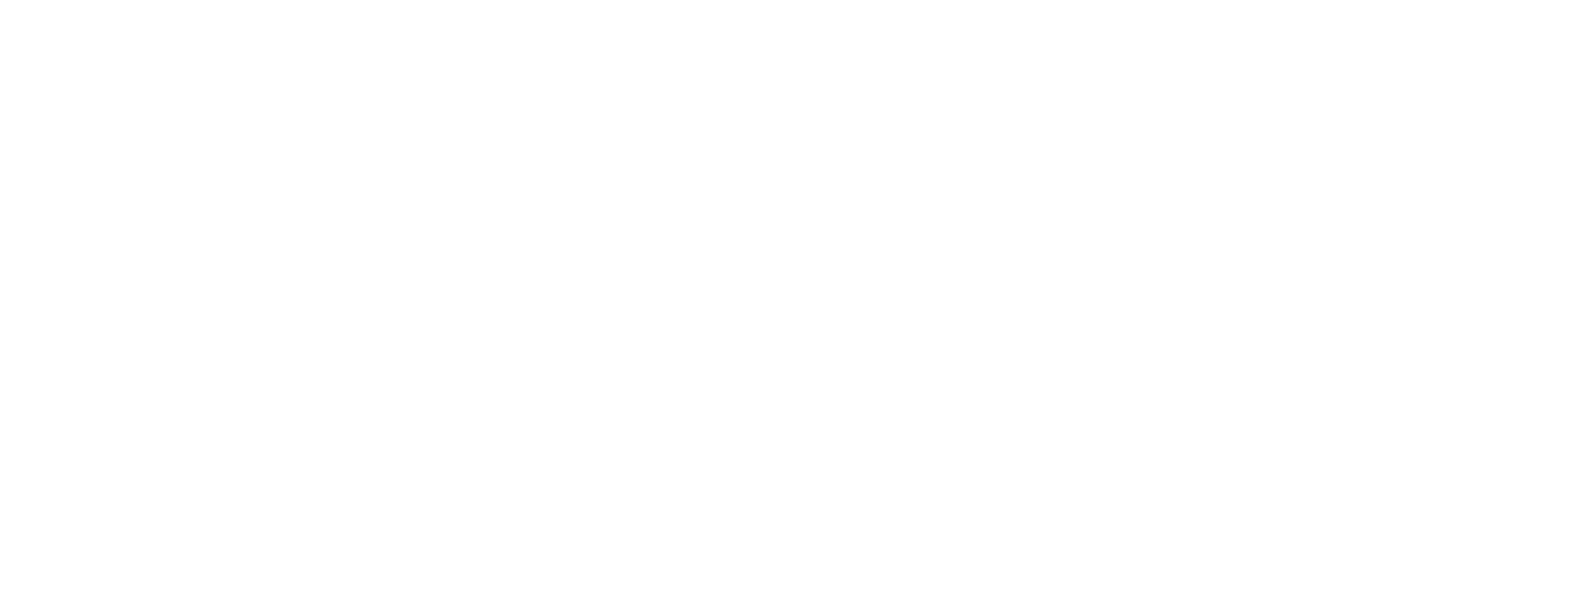 The Logo of Parco